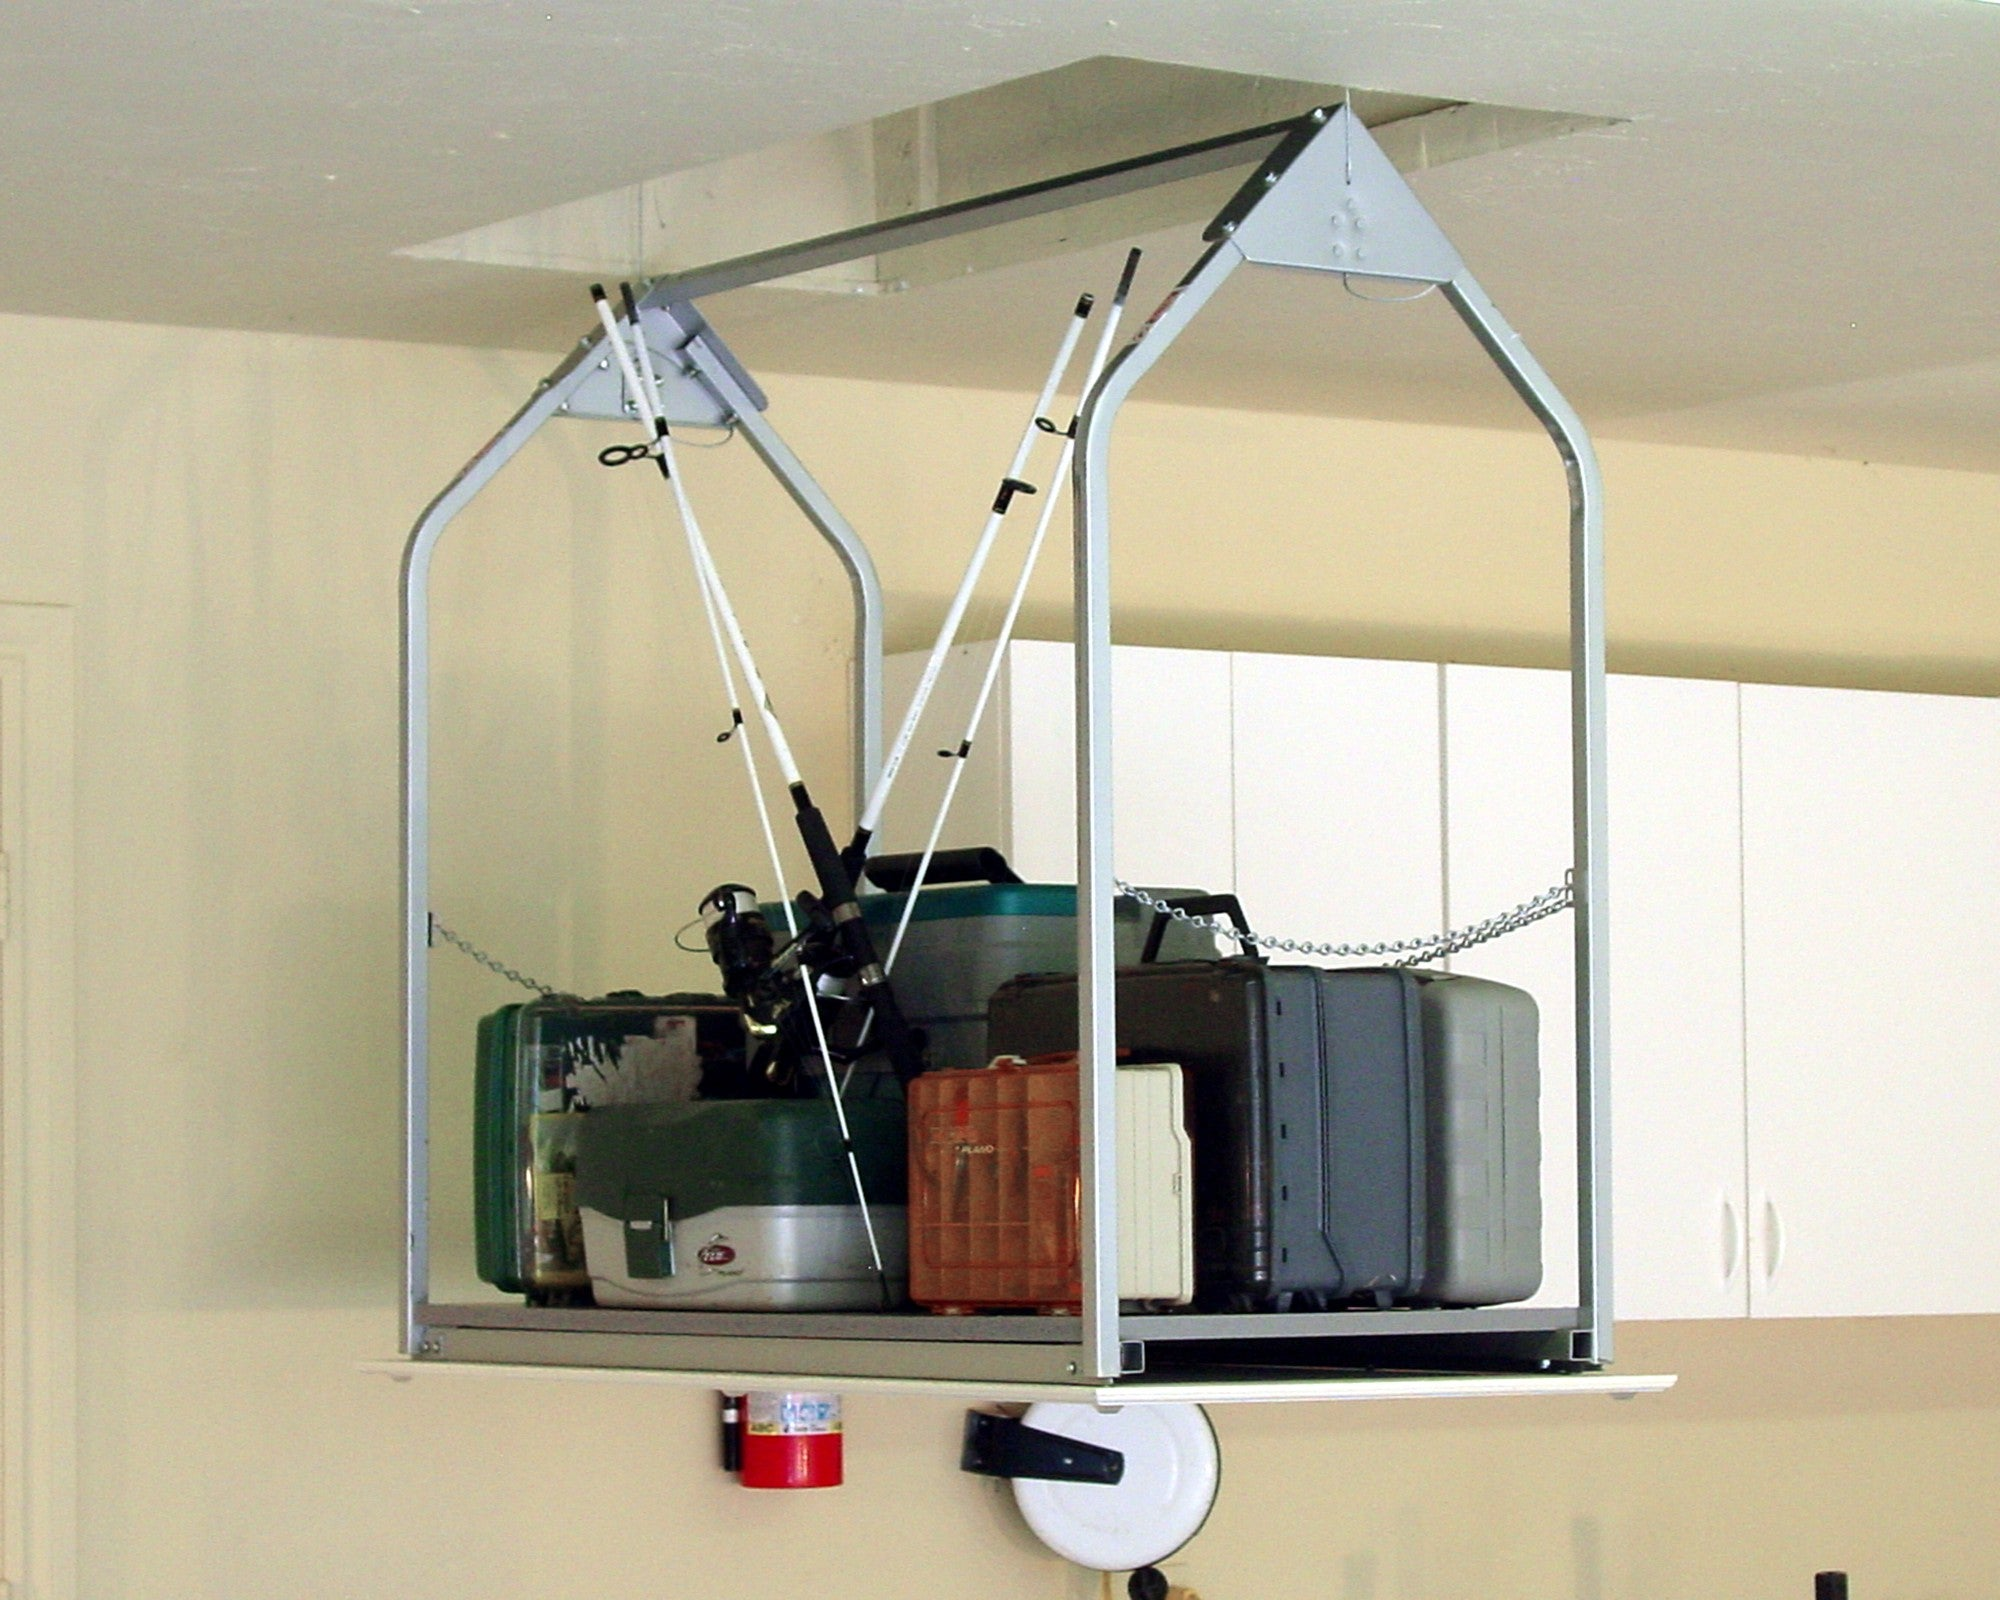 attic lift with fishing equipment